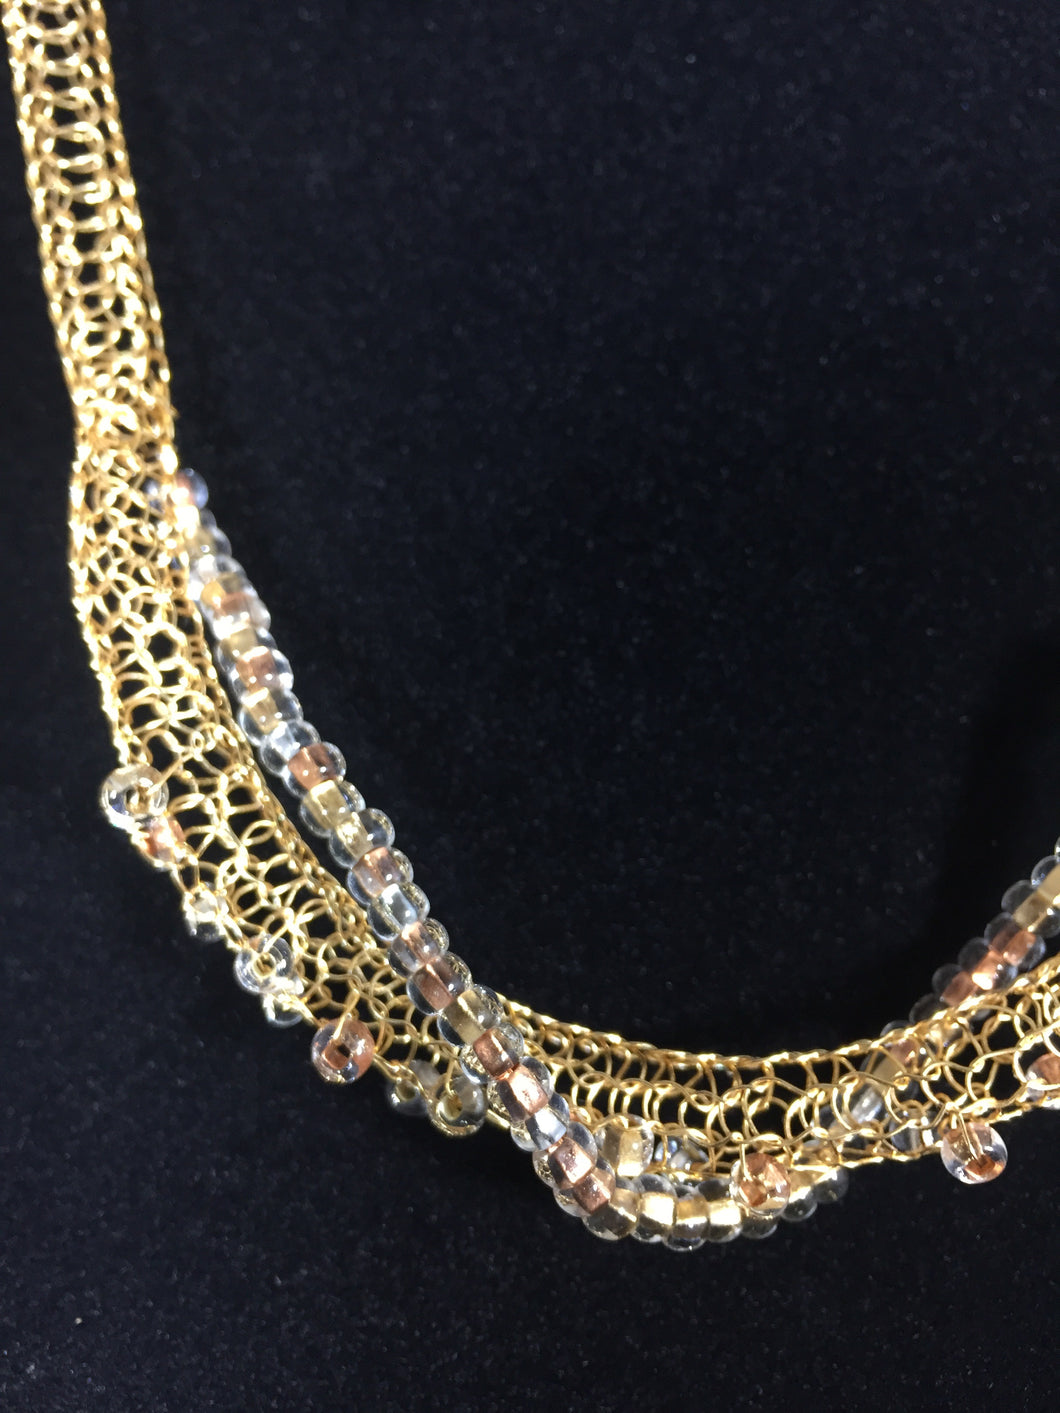 Gold necklace with foil beads